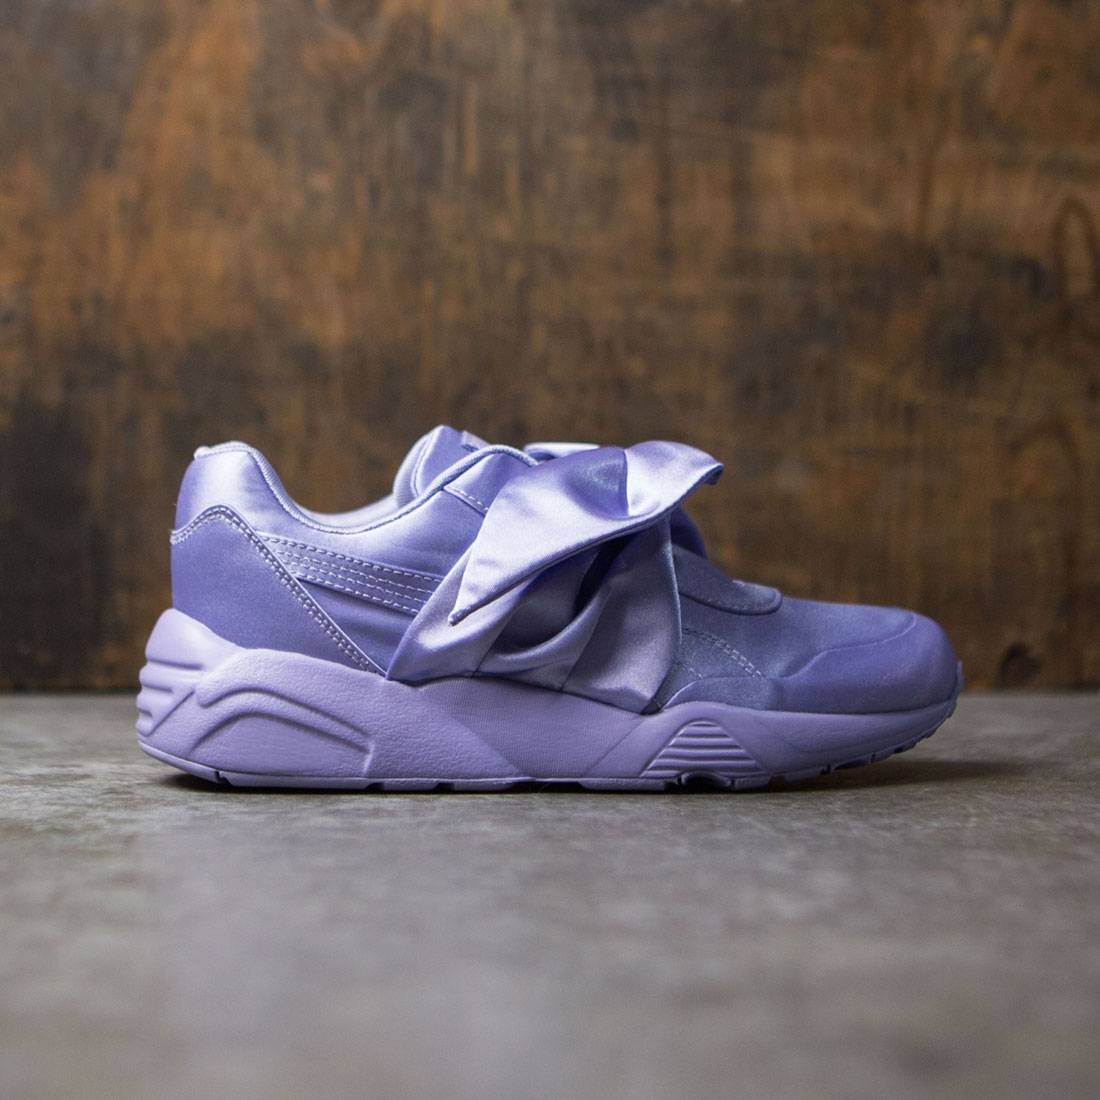 b3246e09f158 Puma x Fenty By Rihanna Women Bow Sneaker purple sweet lavender